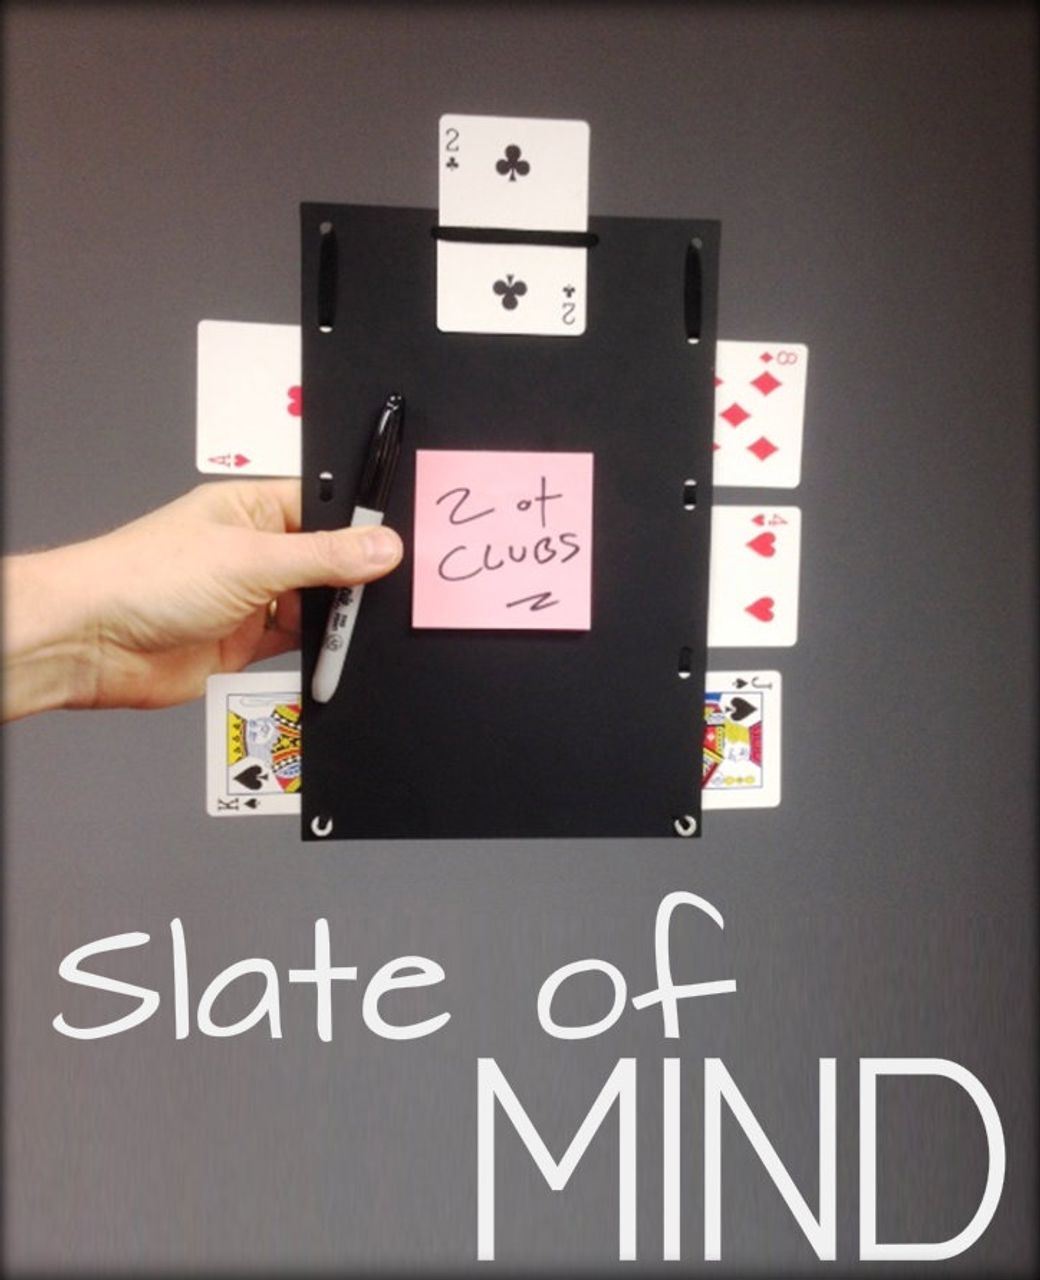 Slate of Mind - Magic Trick Gospel Mind Mentalism